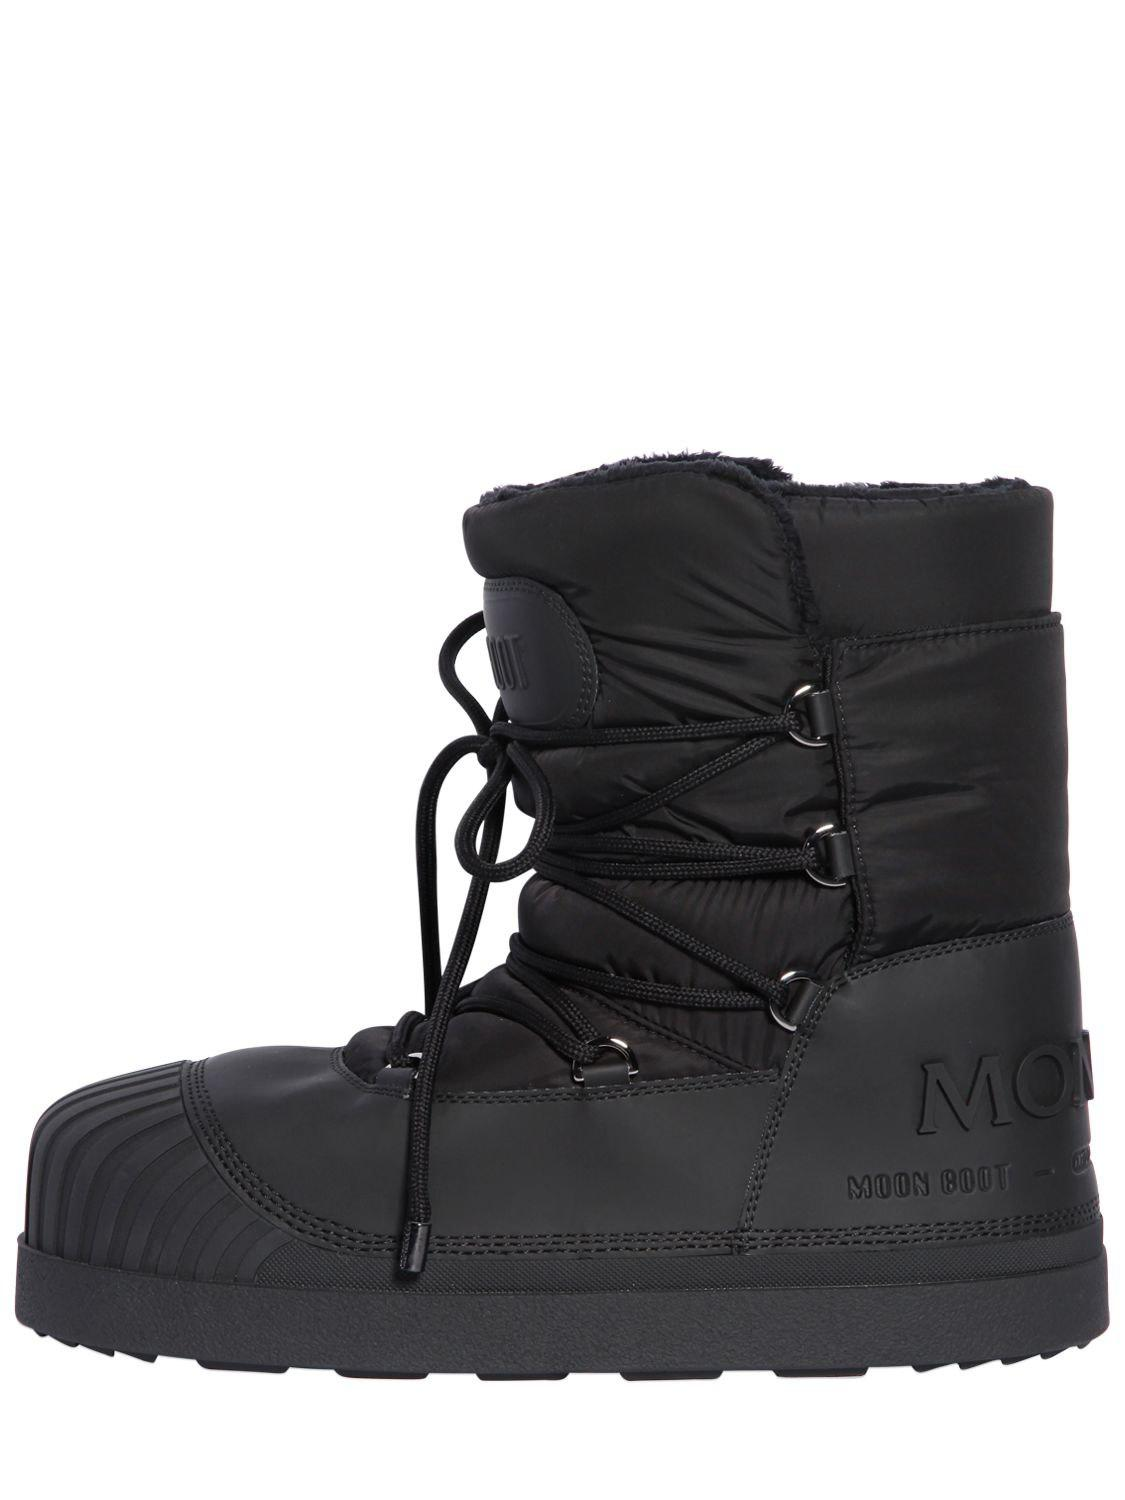 98f0458d0947 Lyst - Moncler Grenoble Moon Boot Ankle Snow Boots in Black for Men